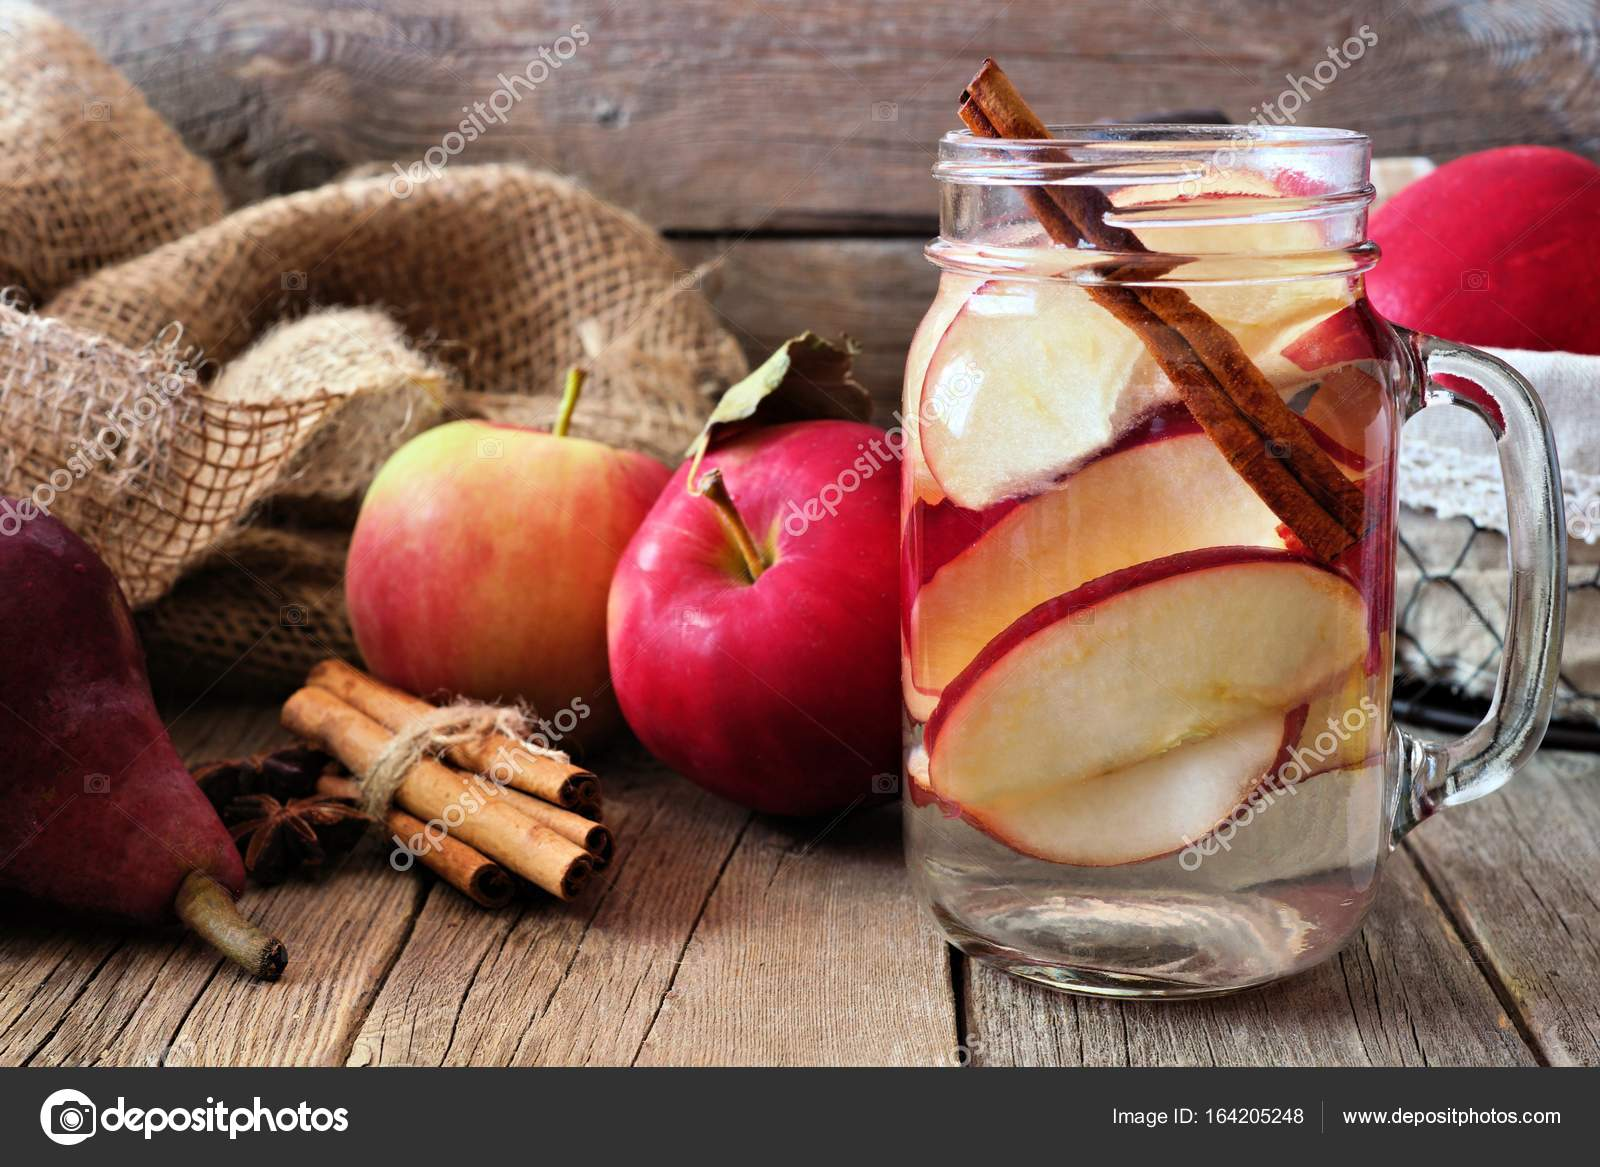 Autumn Themed Detox Water With Apple Cinnamon And Red Pear In A Mason Jar Scene On Rustic Wood Background Photo By JeniFoto